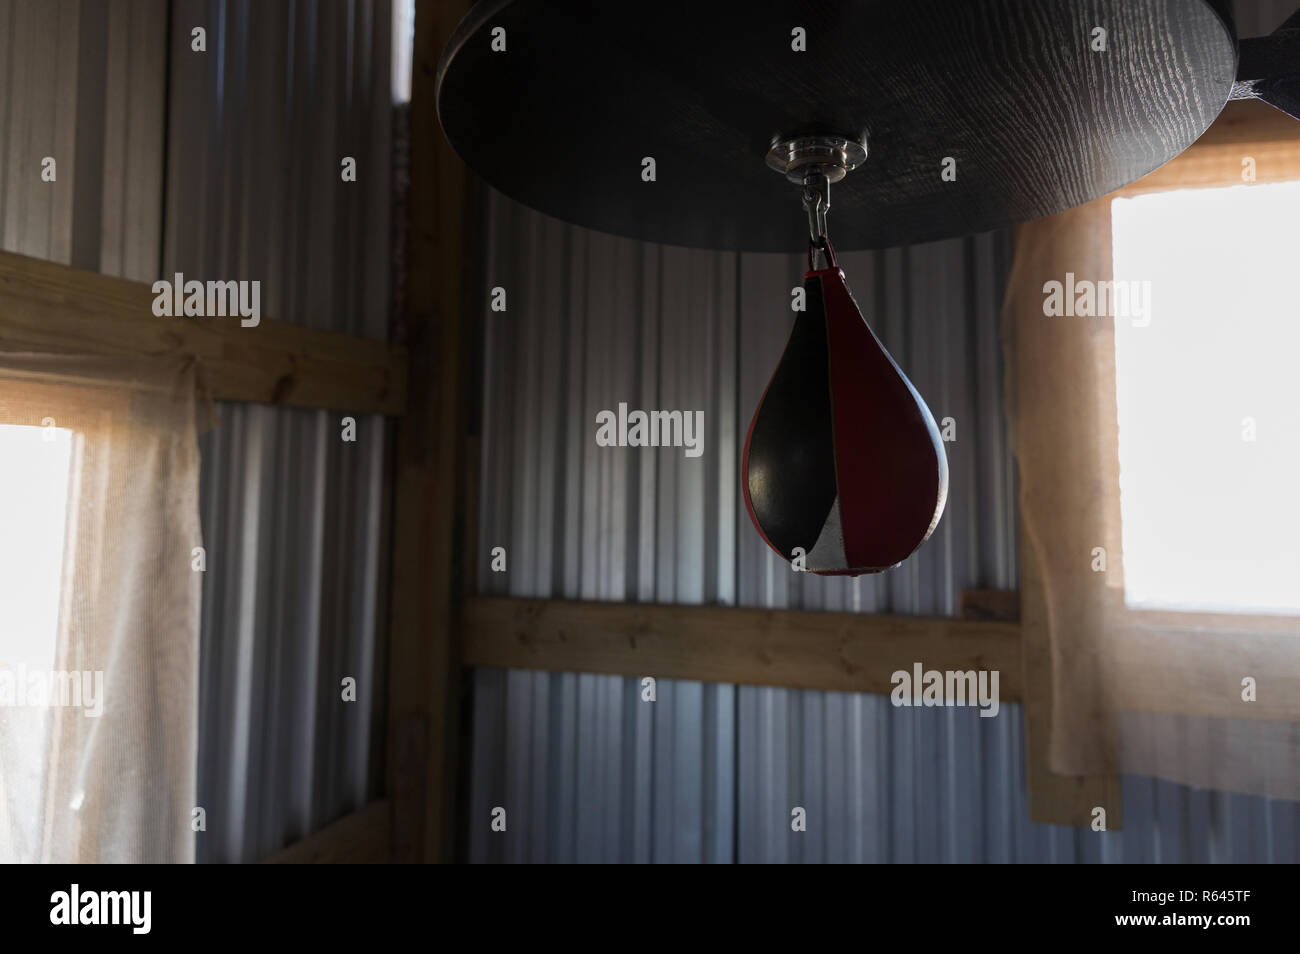 Punching bag in boxing club - Stock Image